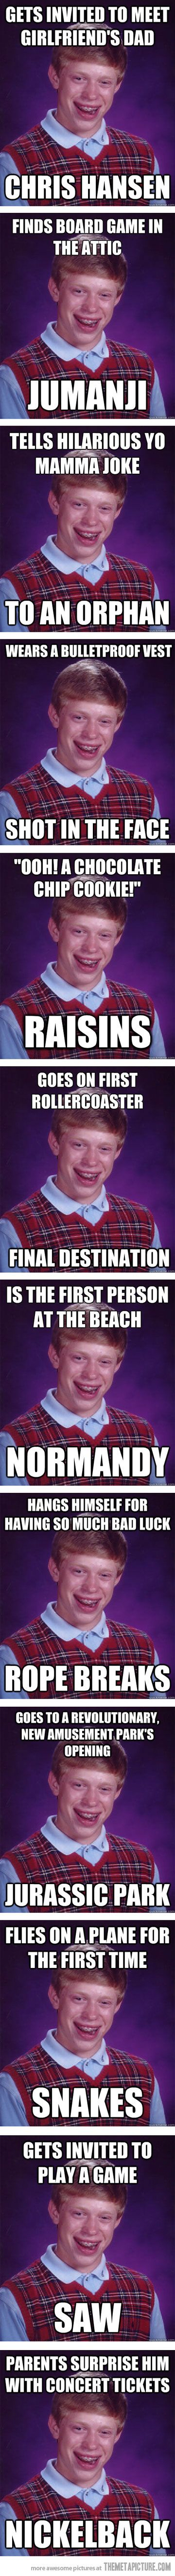 The Best of Bad Luck Brian... - The Meta Picture